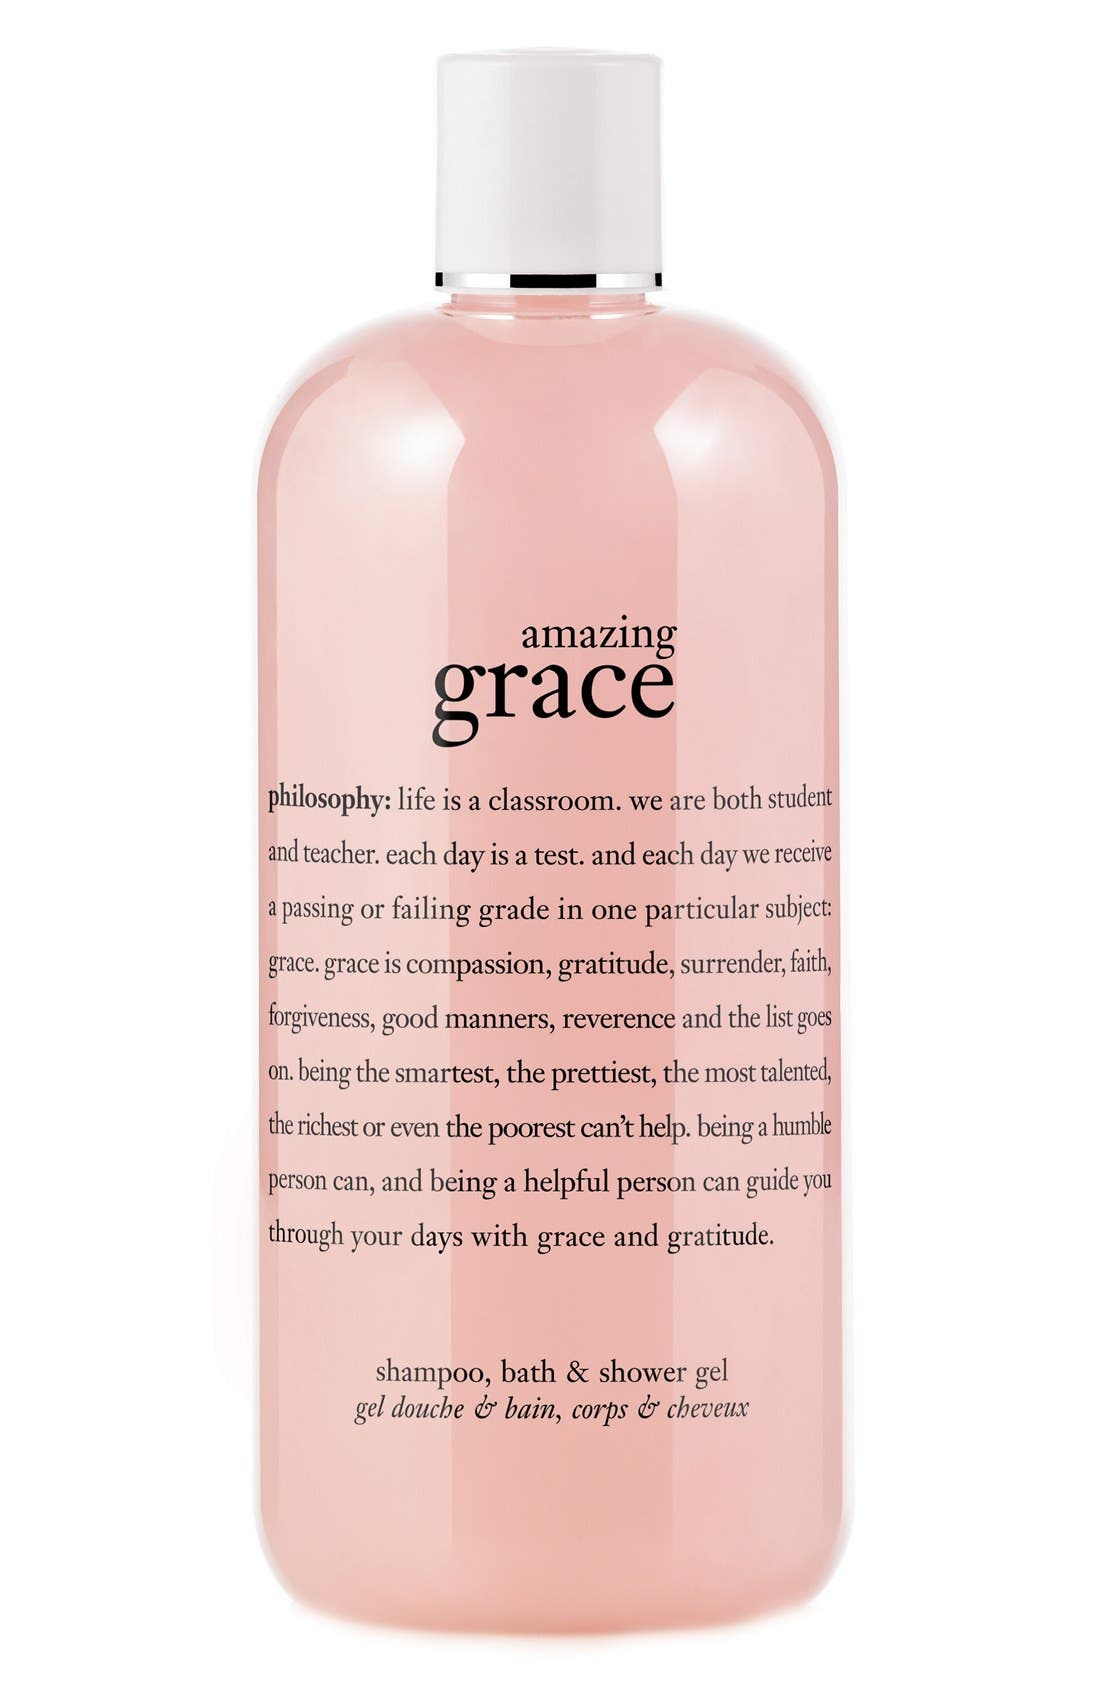 philosophy 'amazing grace' shampoo, bath & shower gel